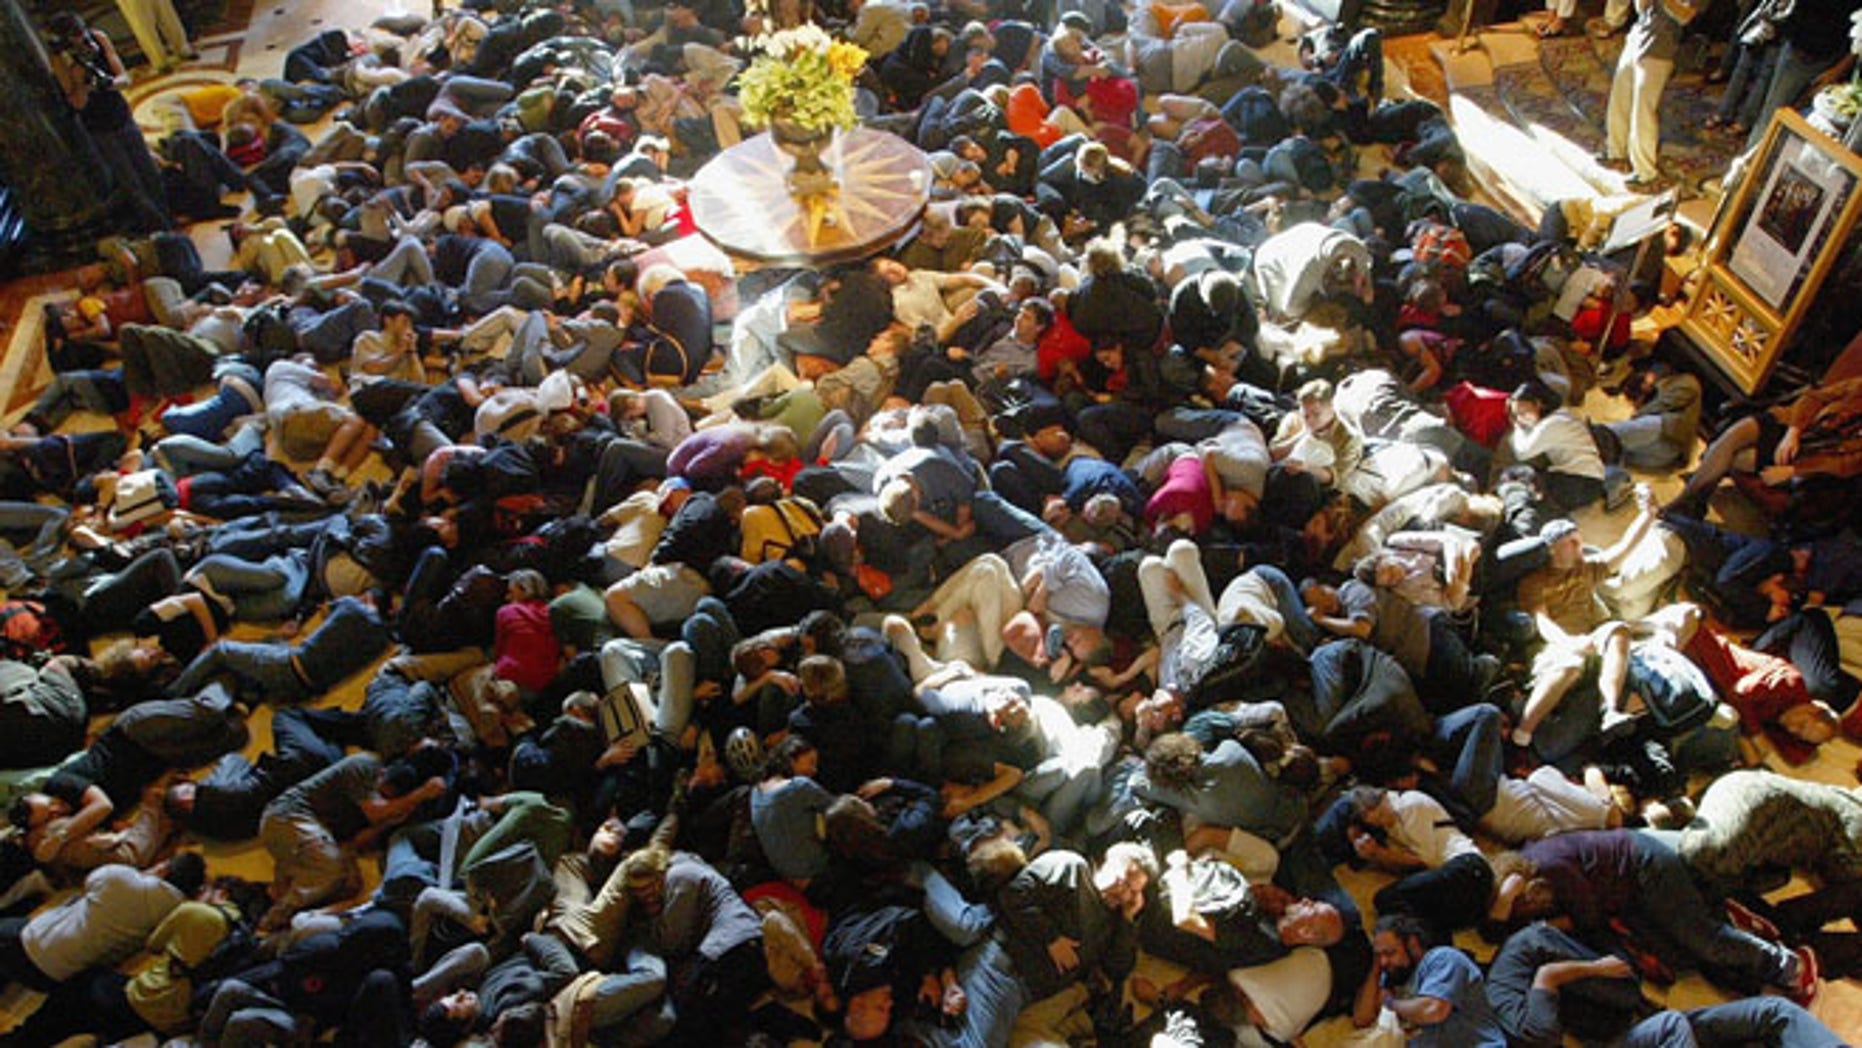 """SAN FRANCISCO - AUGUST 20:  Hundreds of people pretend to sleep as they participate in a """"flash mob"""" in the lobby of the Westin St. Francis Hotel August 20, 2003 in San Francisco, California. Flash mobs are seemingly unplanned gatherings of people arrainged by email that converge in public places for brief periods of time, perform some brief action, and then disperse.   (Photo by Justin Sullivan/Getty Images)"""